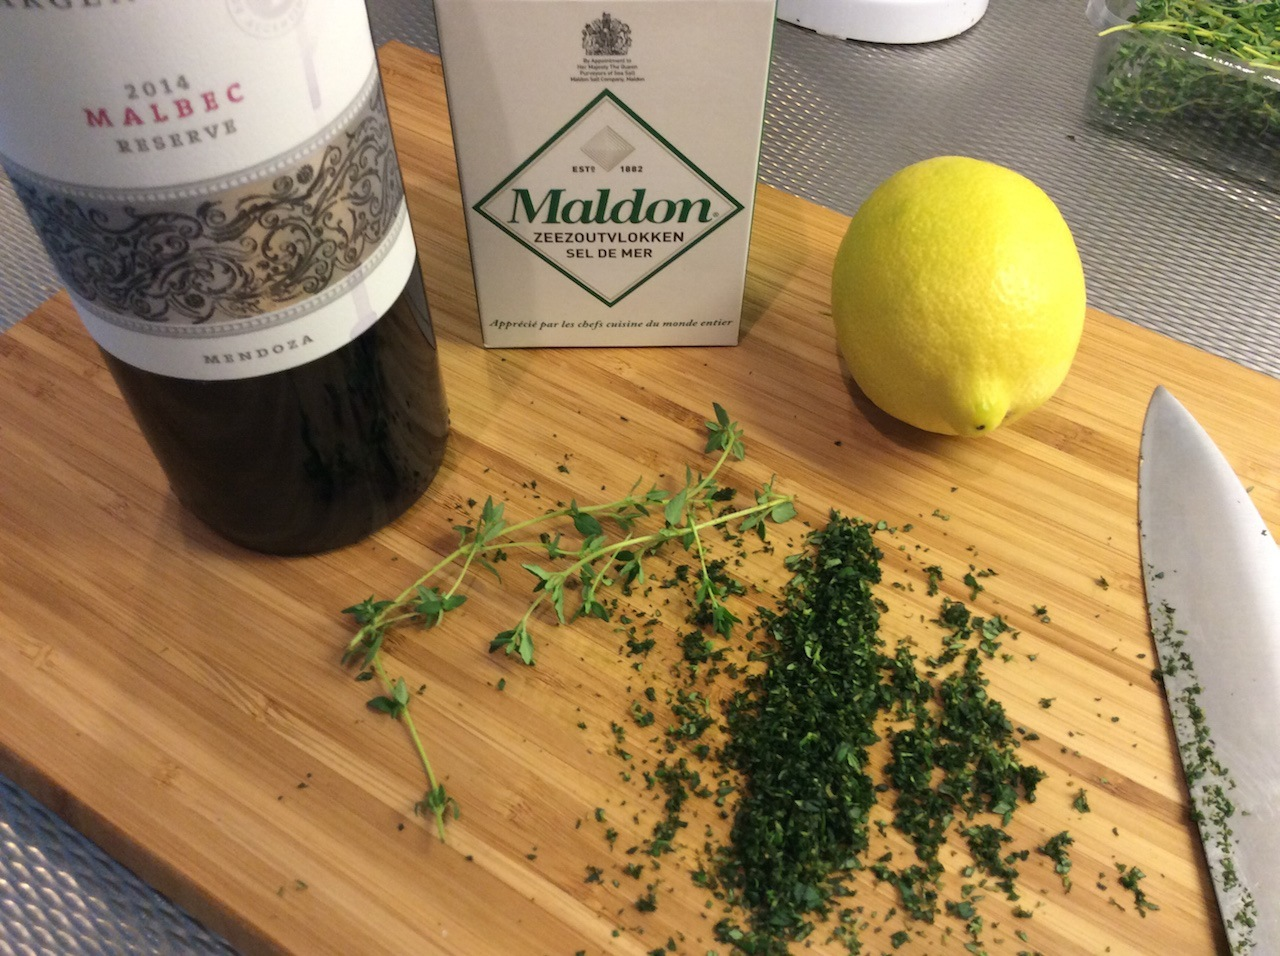 The basic ingredients are wine and salt. You can add herbs and zests if you want to add some extra flavor.